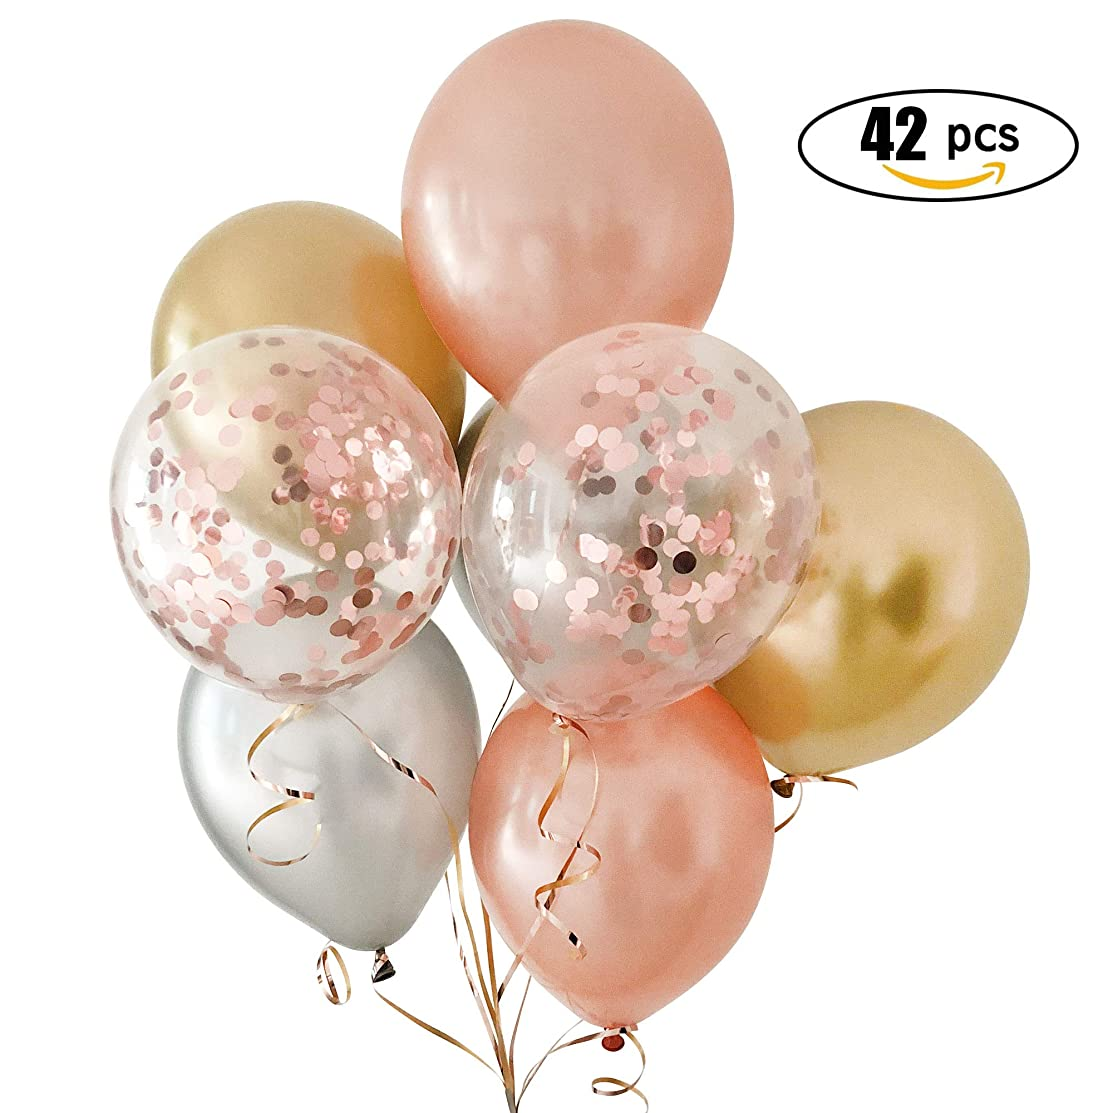 Rose Gold Balloons & Rose Gold Confetti Balloons Gold&Silver Metallic Balloon With Ribbon 42 for Pack -12 inch Premium Latex Balloons & 64ft Ribbon - Rose Gold Party Decorations, Bridal Shower, Baby Shower, Weddings, Bachelorette, Birthday Party